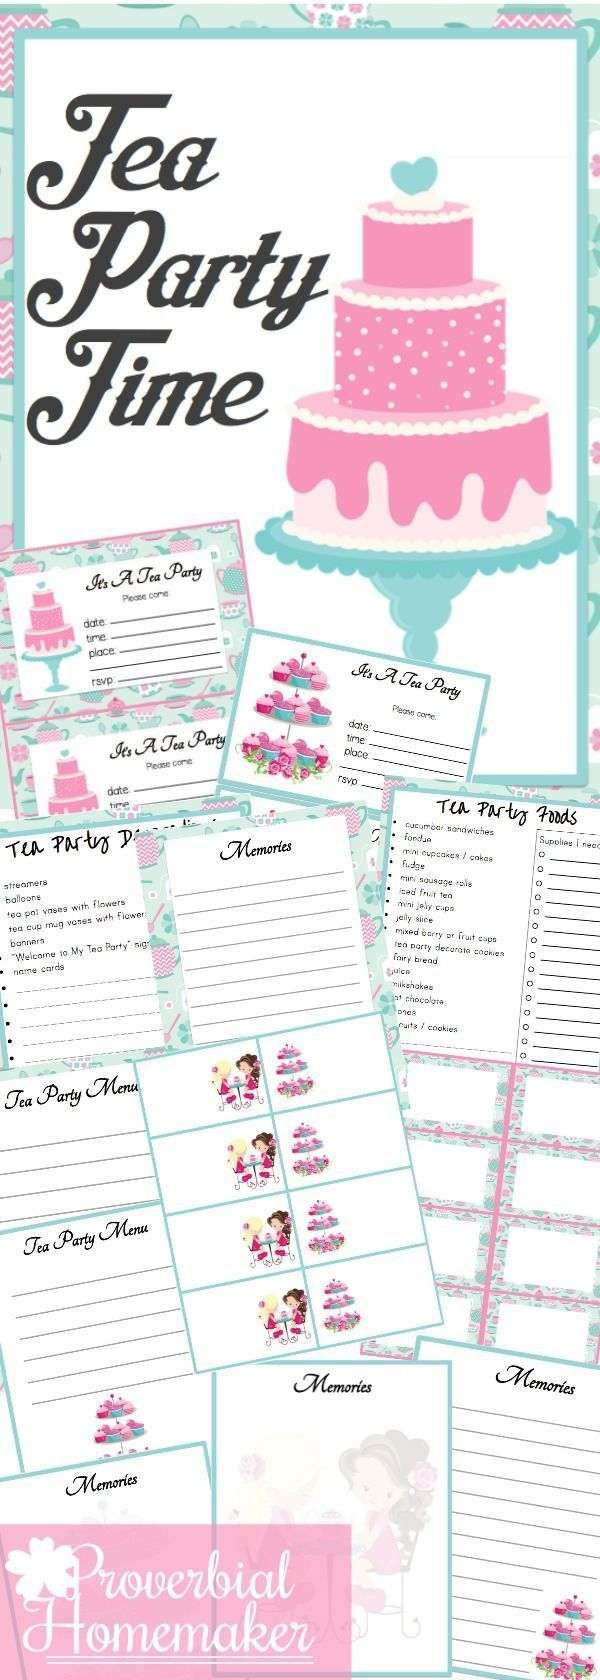 tea party printable pack fun printables party printables tea rh pinterest com